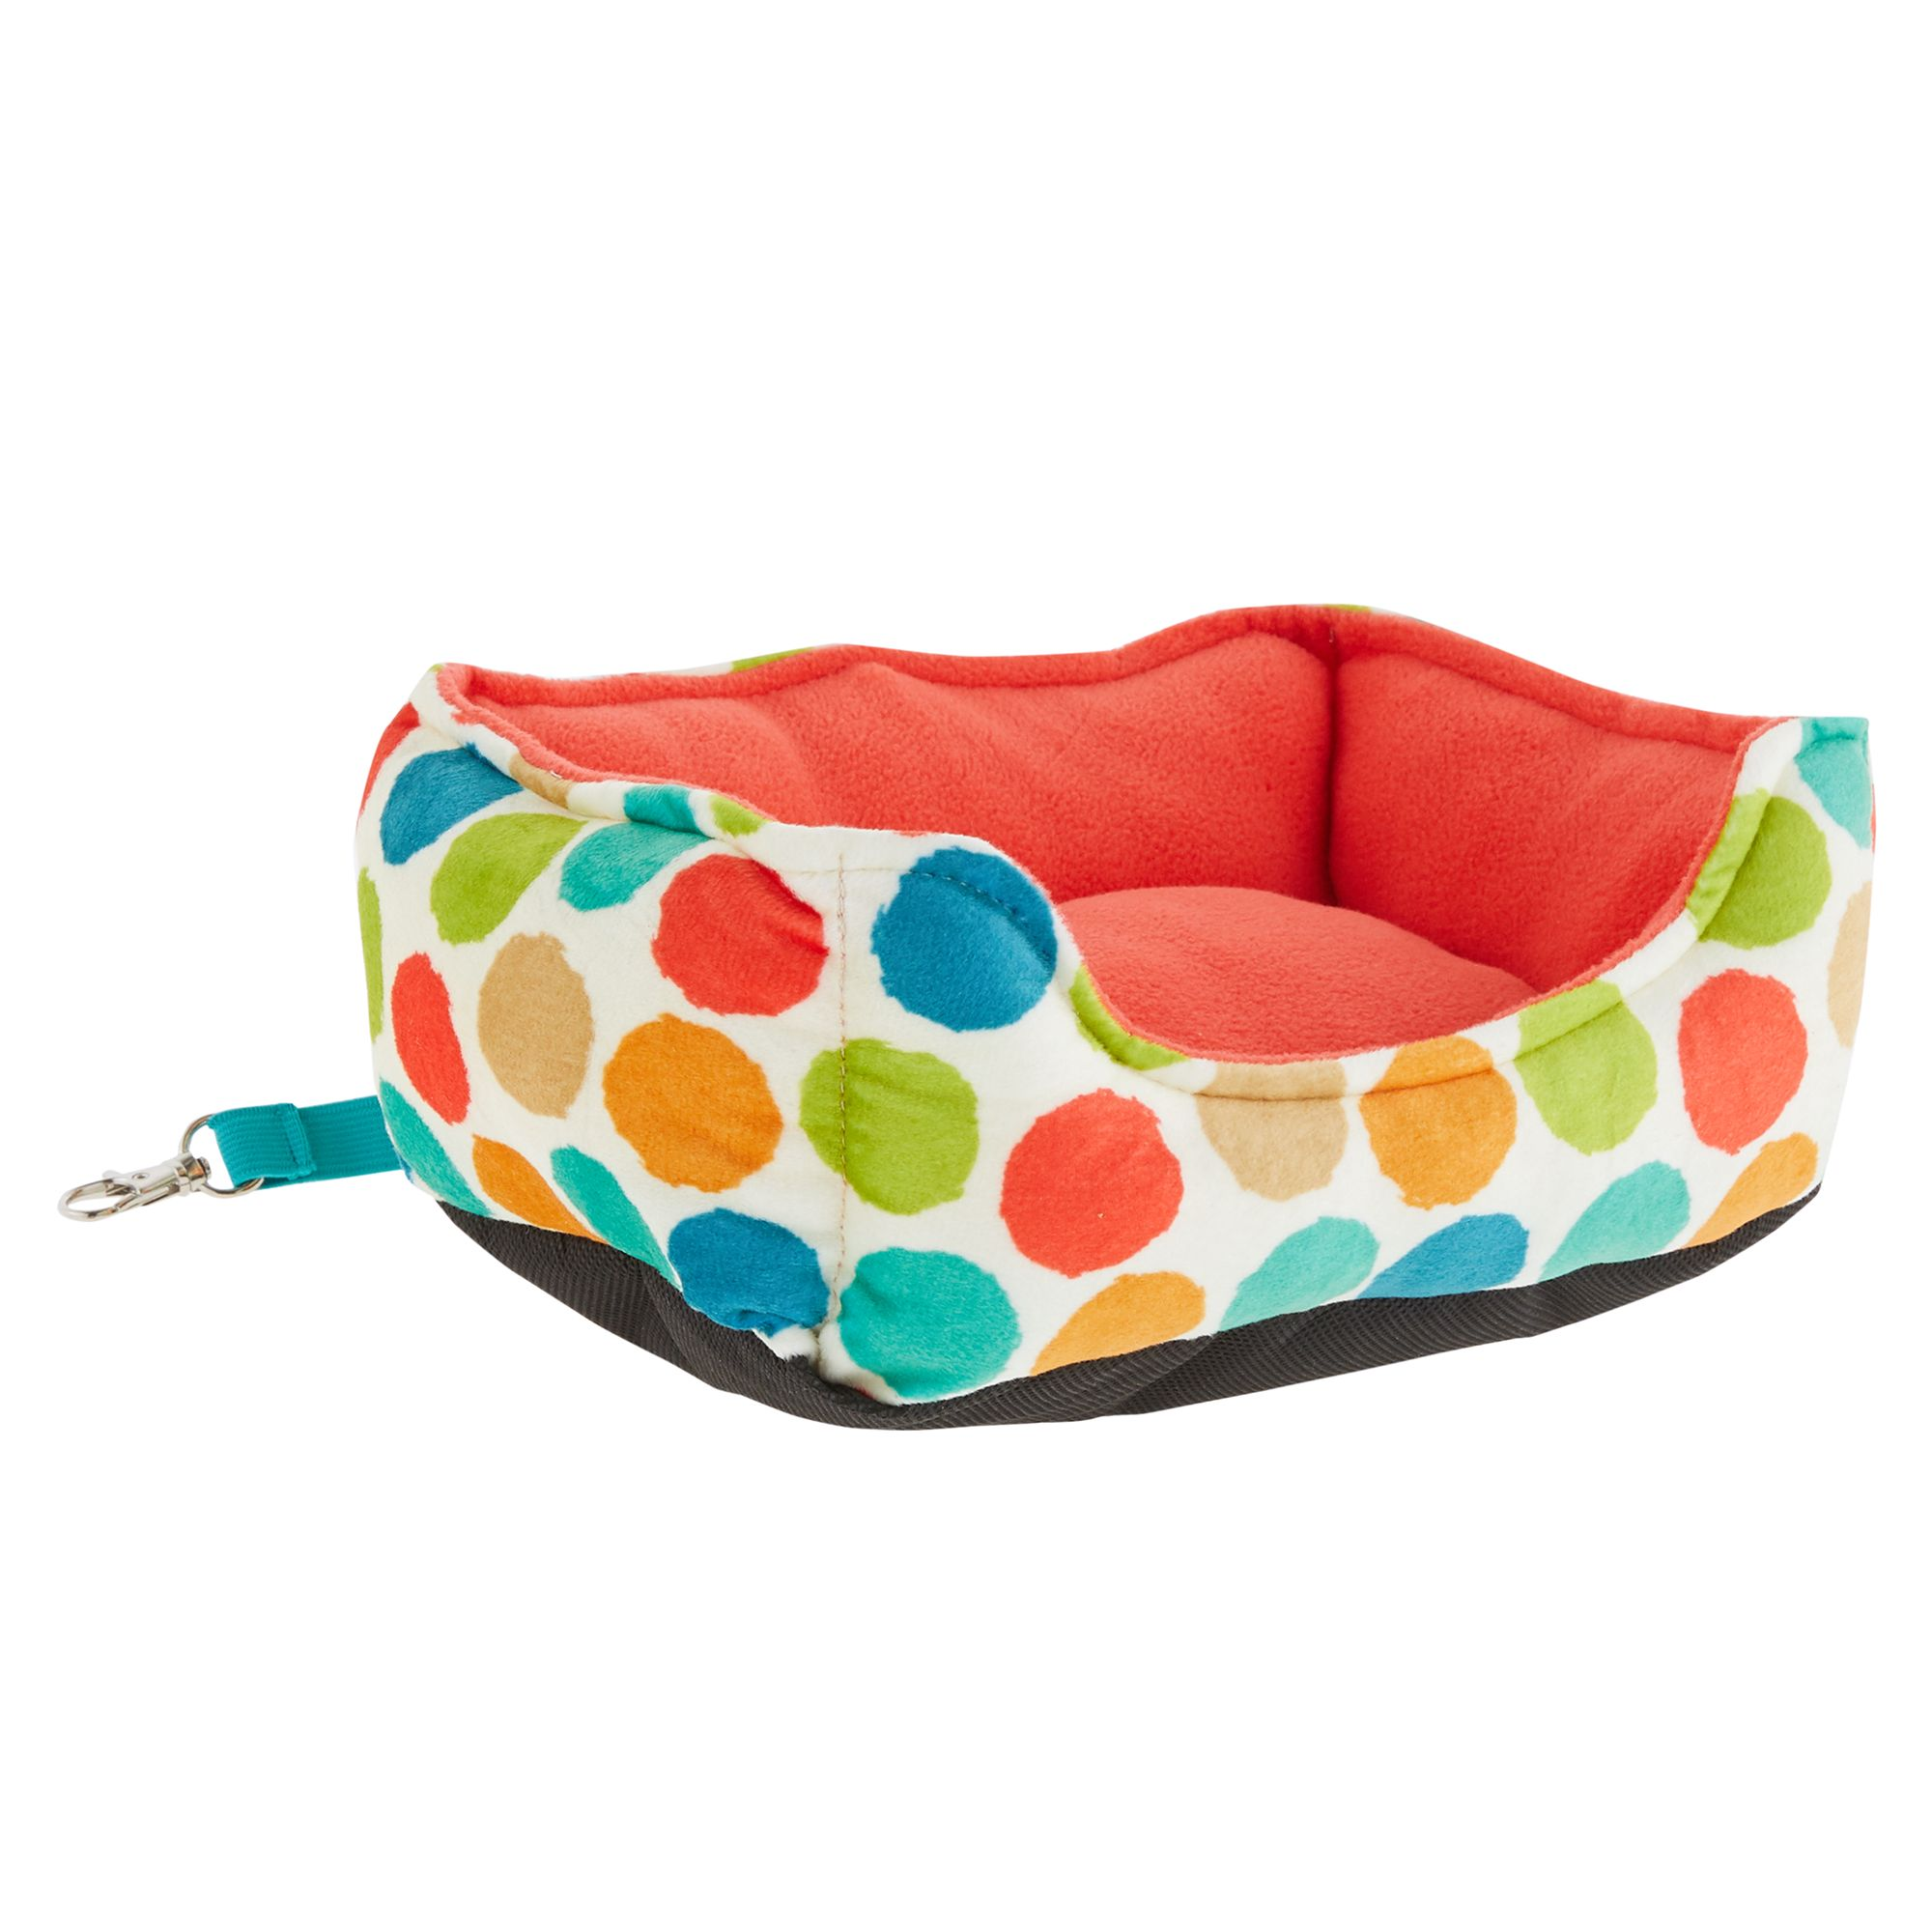 All Living Things Cuddler Small Pet Bed Small Pet Tunnels Hideouts Petsmart